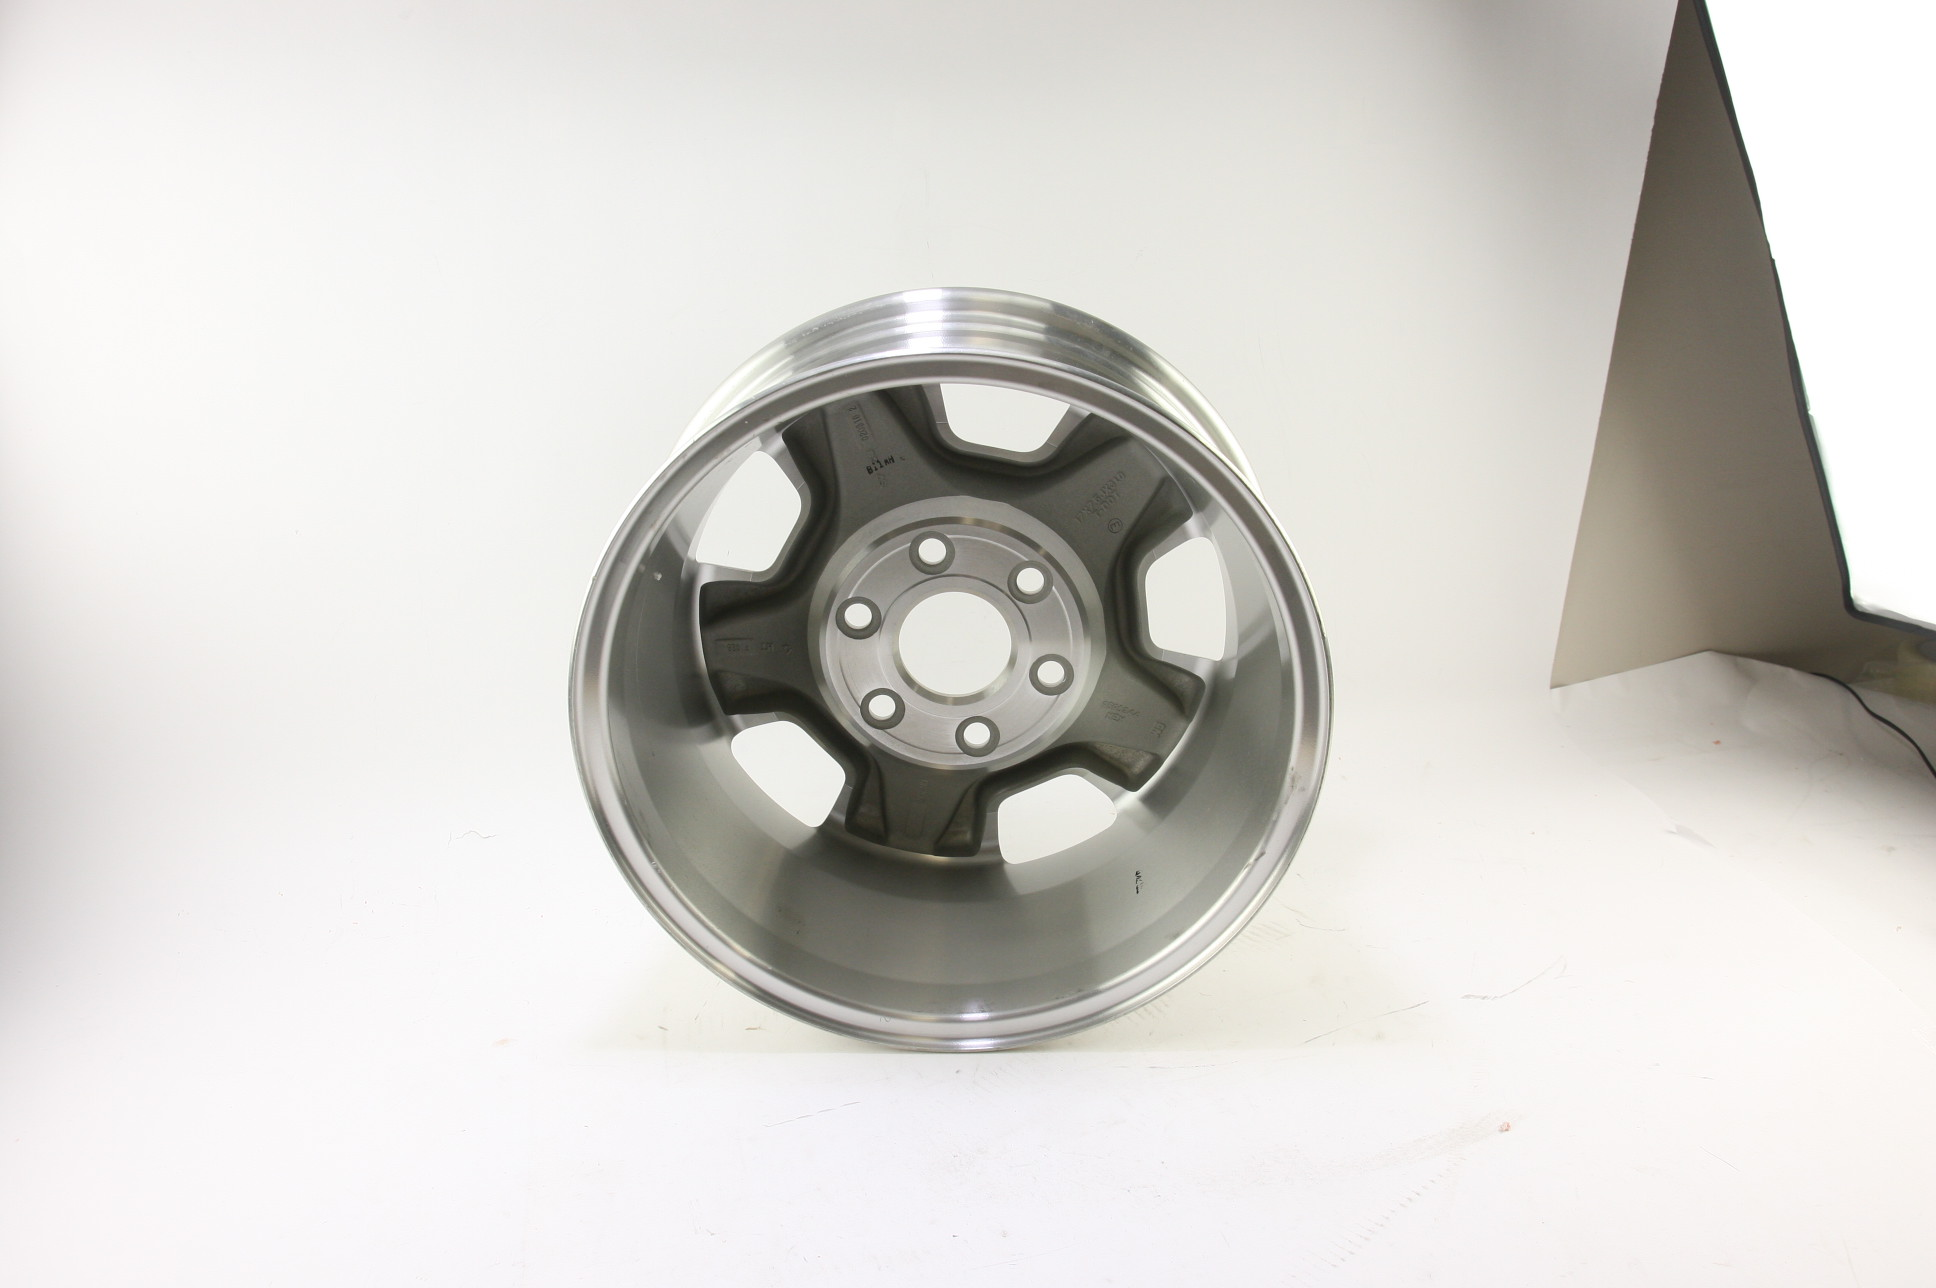 "* New OEM 9596050 Genuine GM Avalanche Silverado Suburban 17"" Wheel Alloy Rim - image 8"